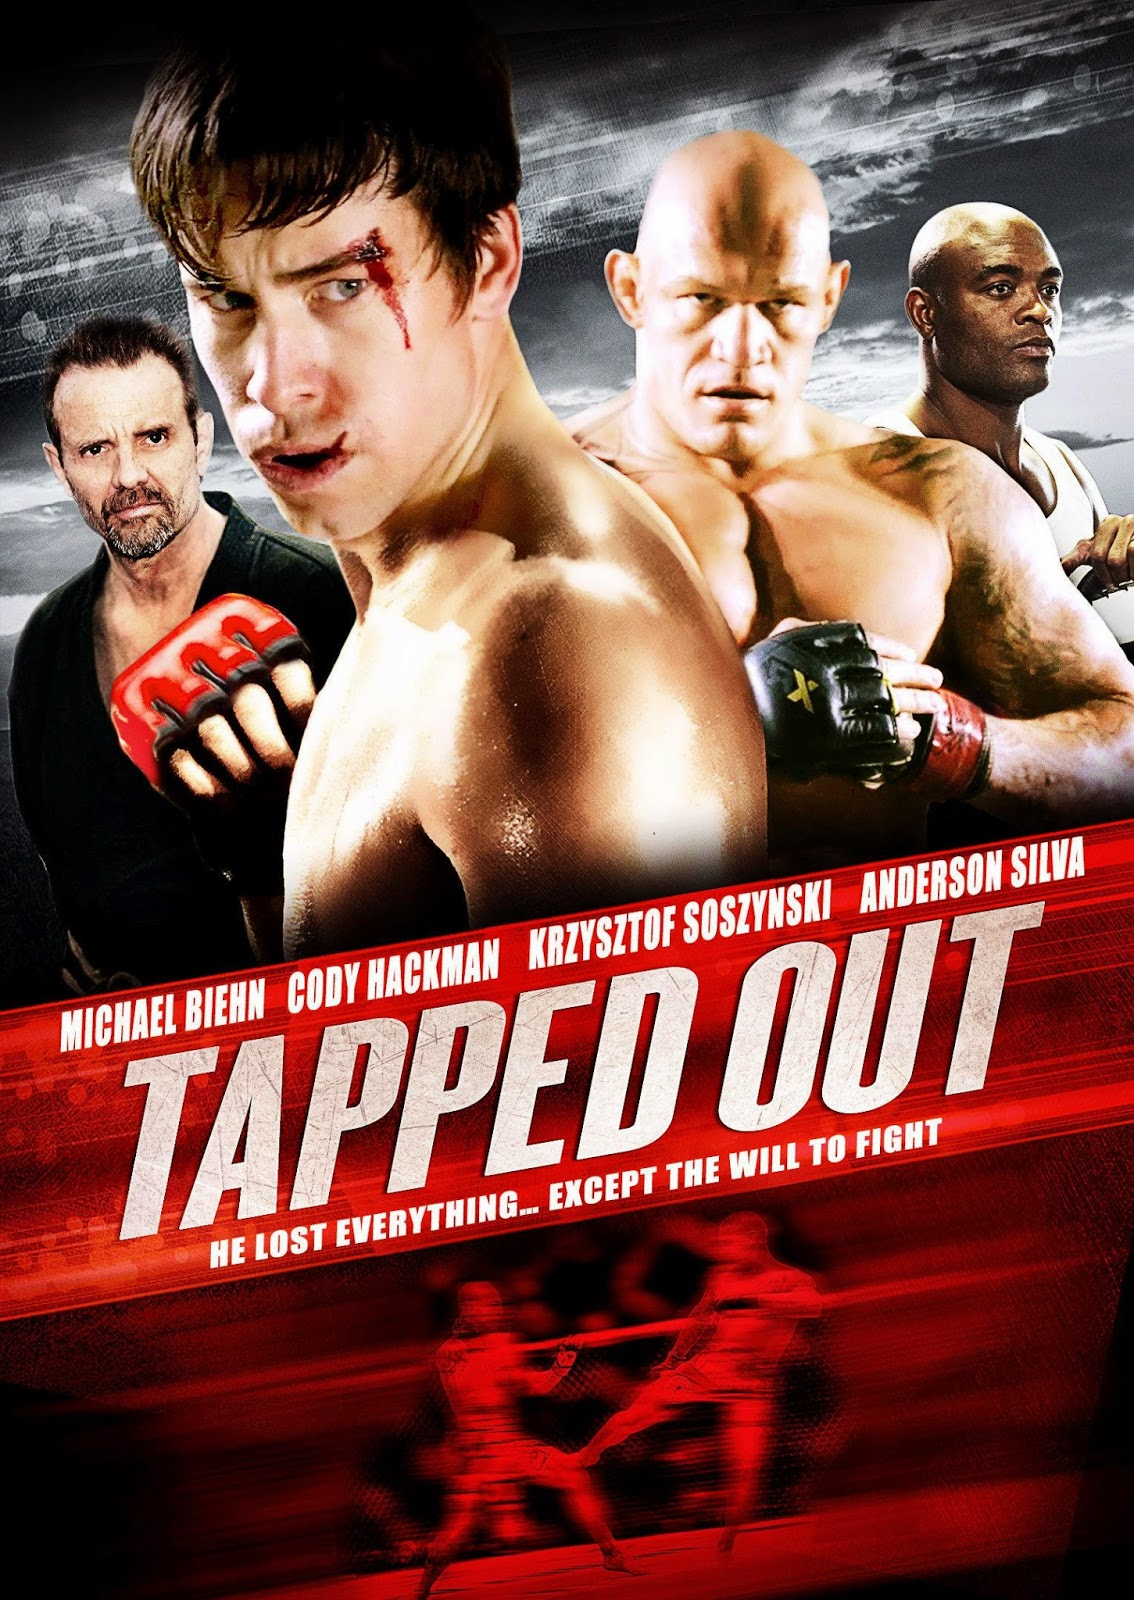 Tapped Out 2014 best poster